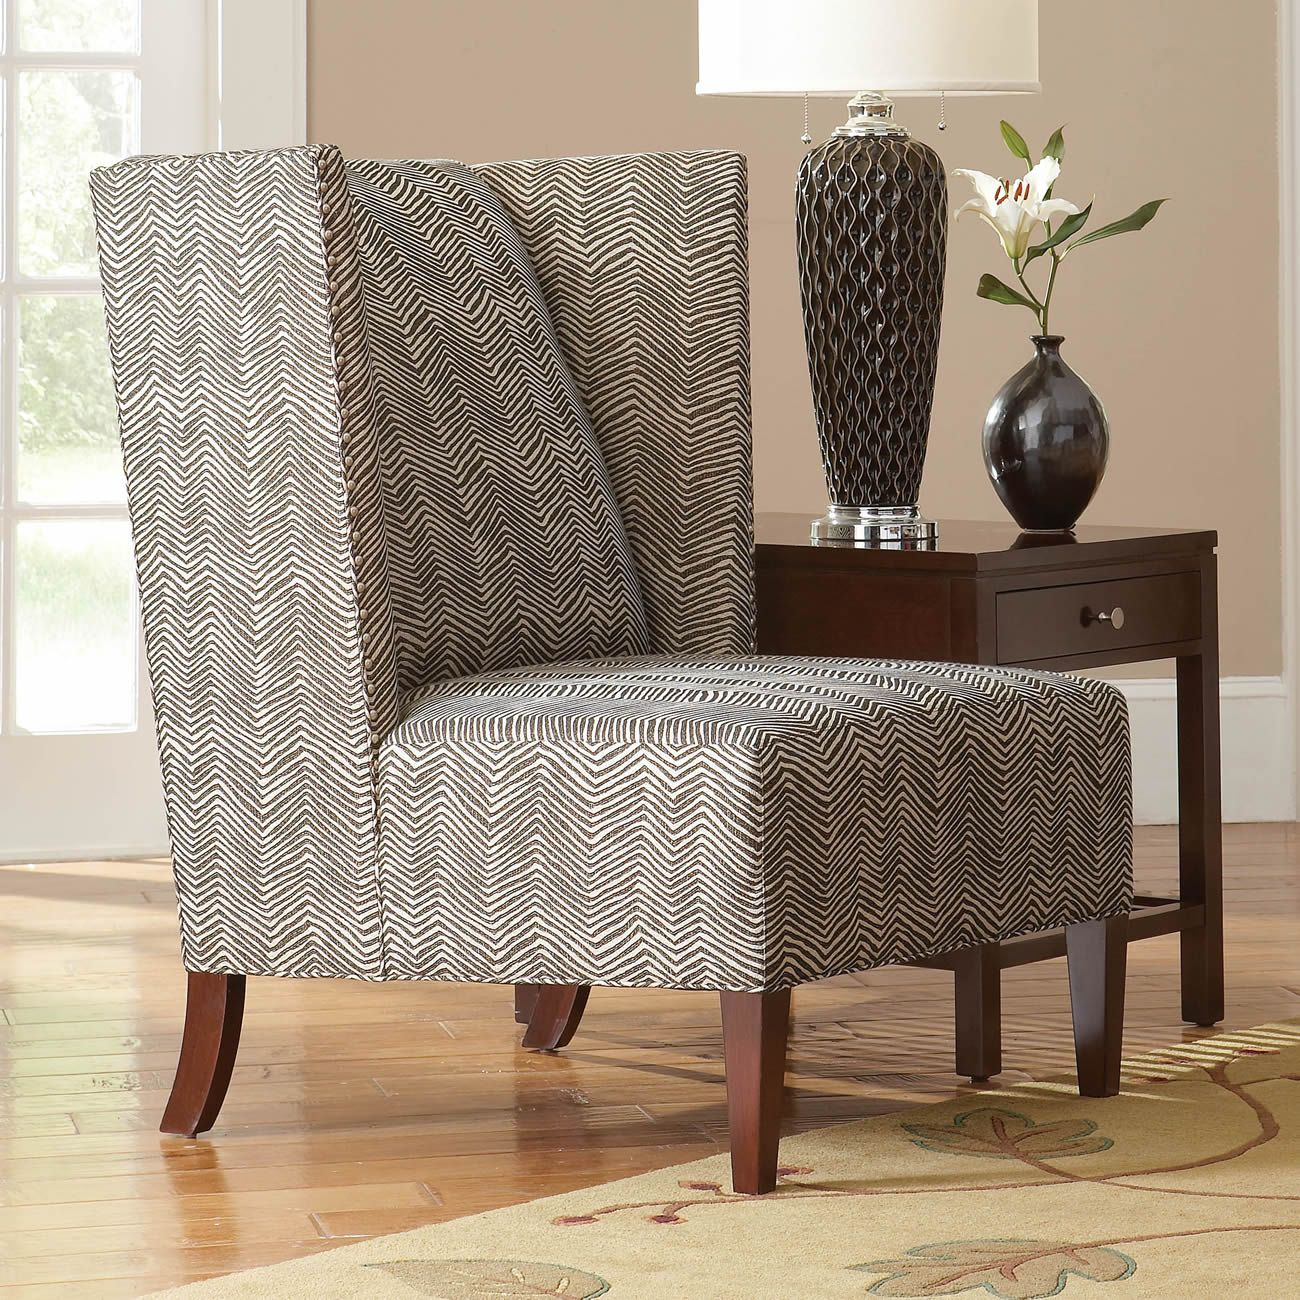 Chevron wing chairs - Stickley Furniture Fairport Wing Chair Modern Lines With A Fun Upholstered Fabric Available Through